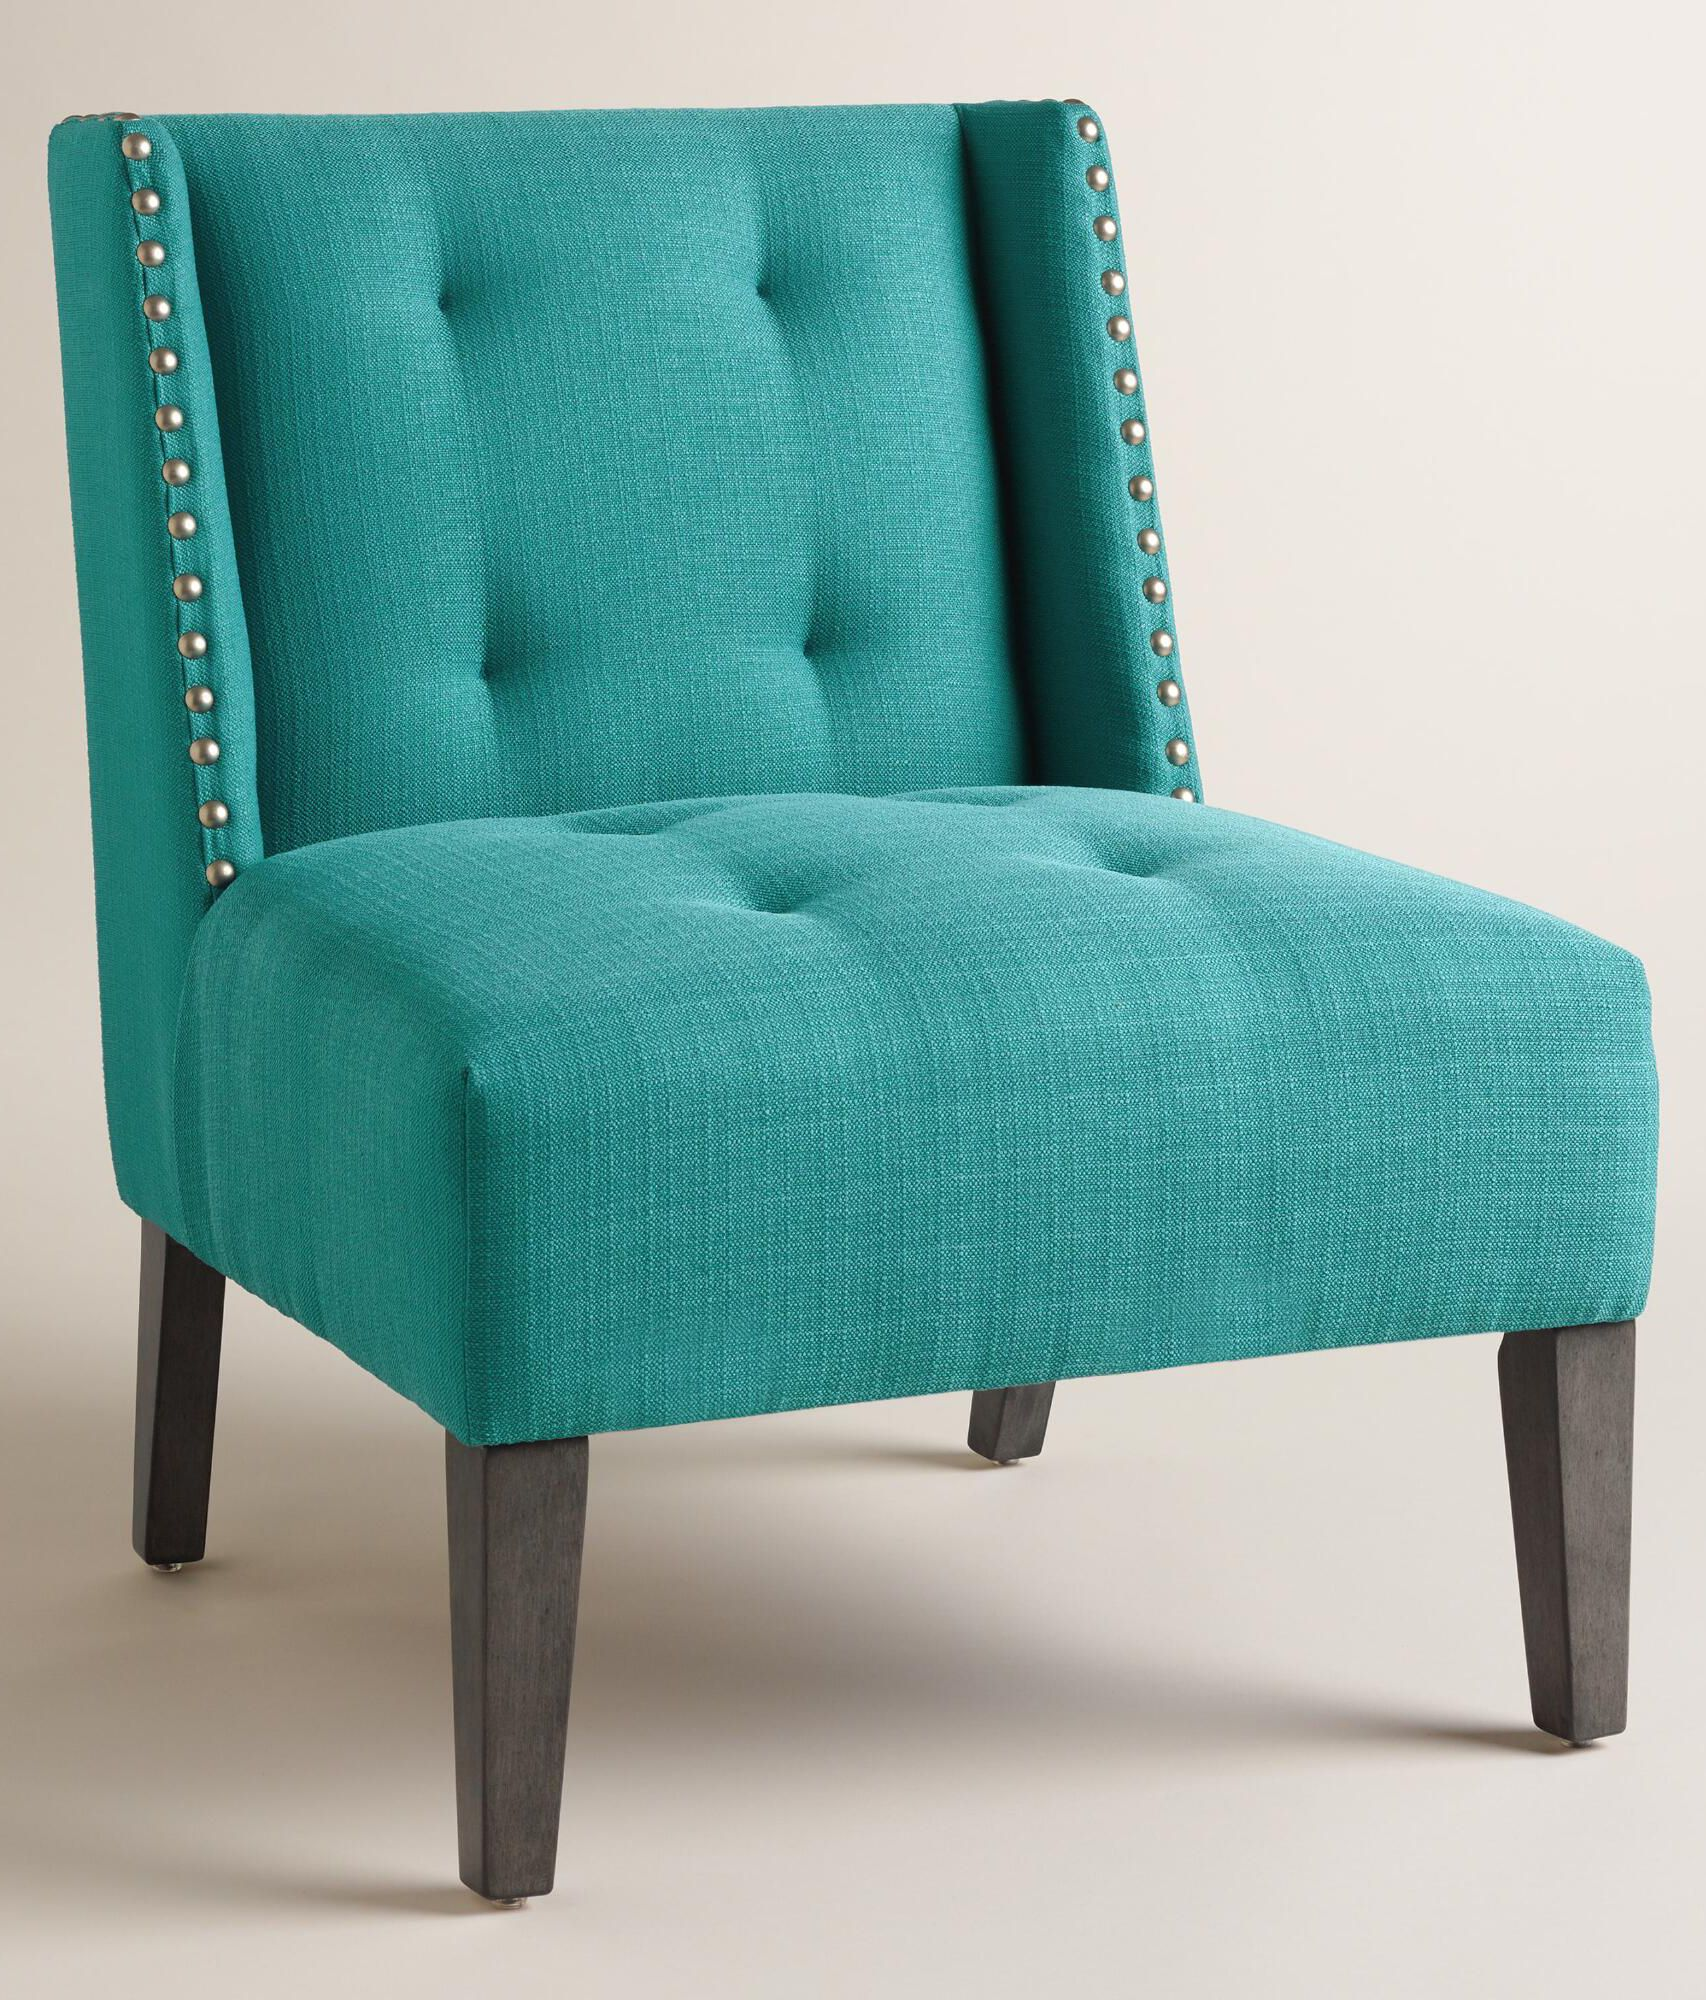 Peacock Blue Carlin Wingback Chair House Of Turquoise